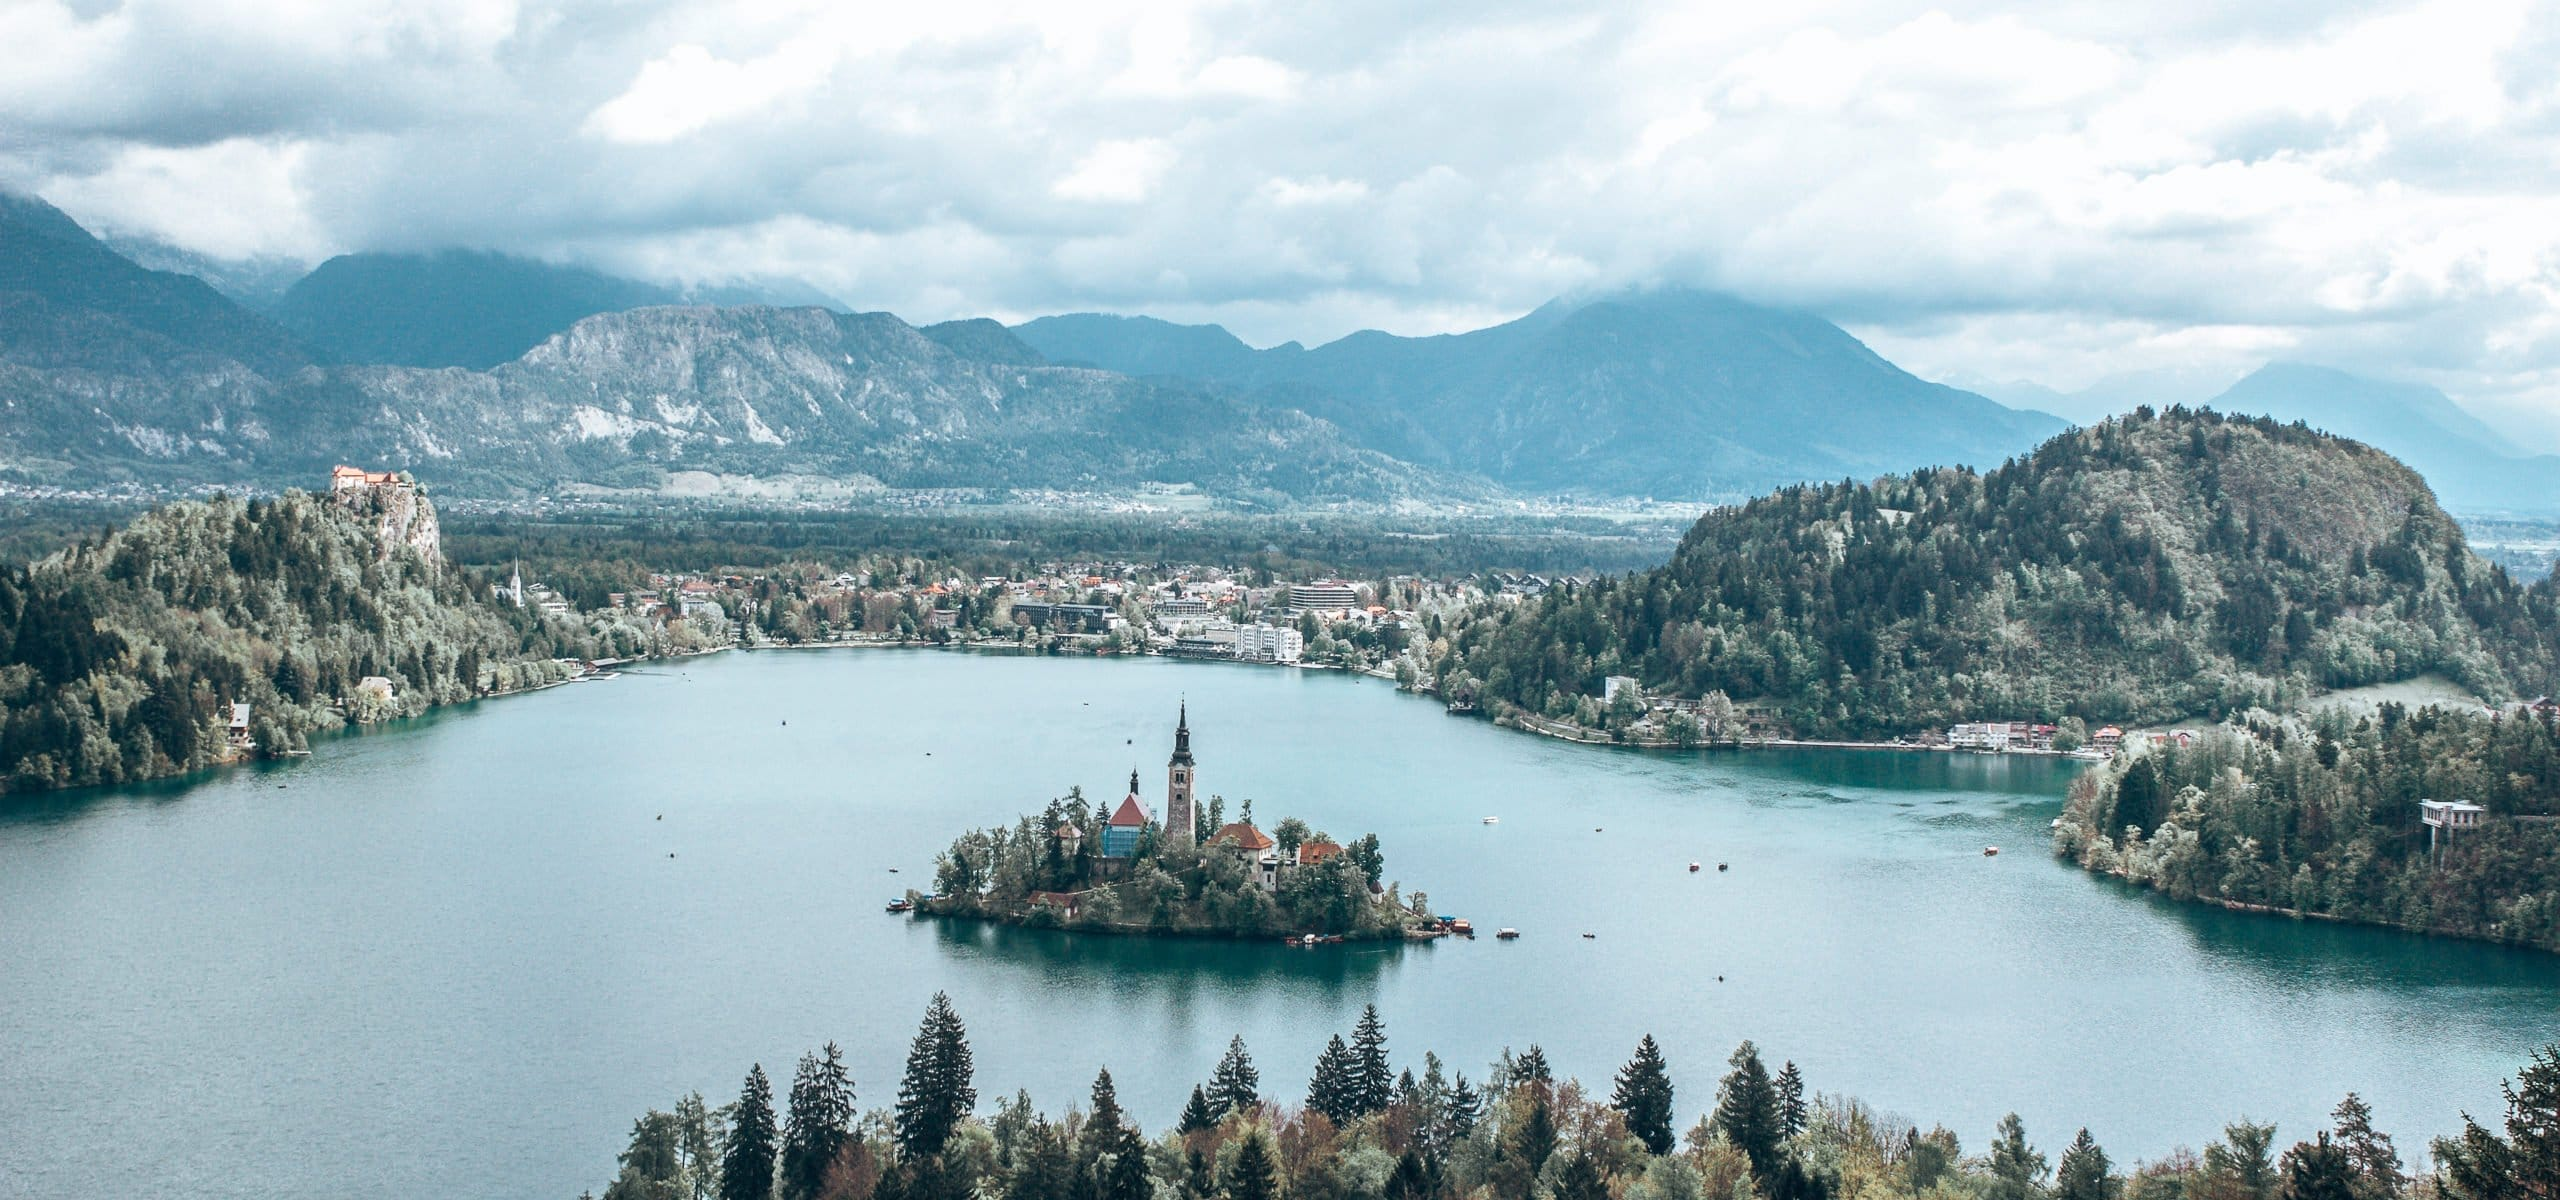 Looking out over Lake Bled and Bled Island from Ojstrica lookout, Slovenia